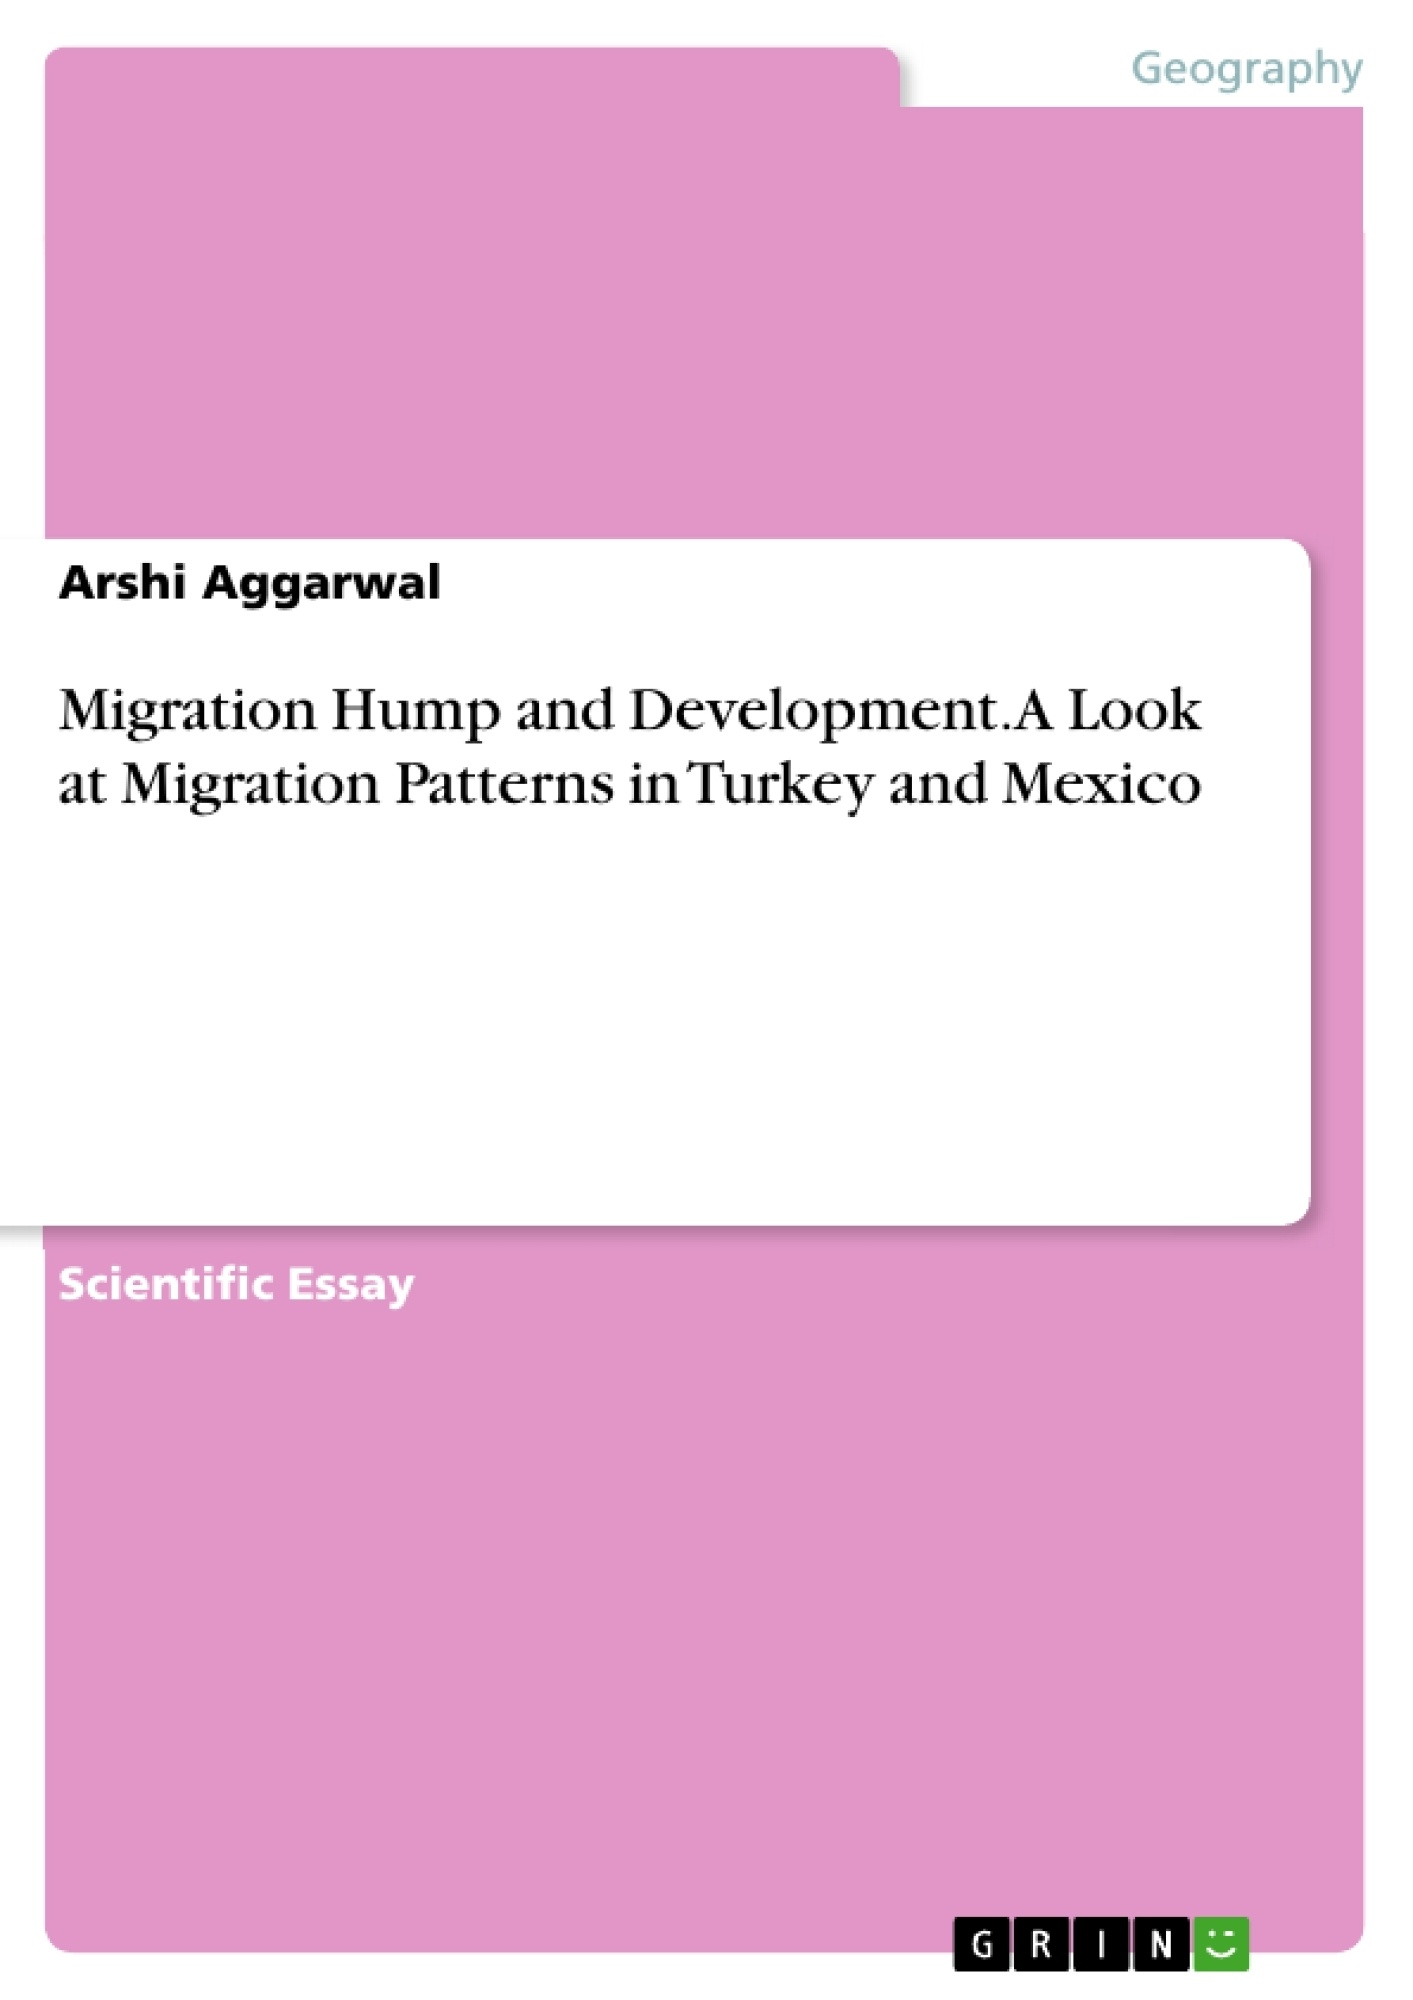 migration hump and development a look at migration patterns in migration hump and development a look at migration patterns in publish your master s thesis bachelor s thesis essay or term paper